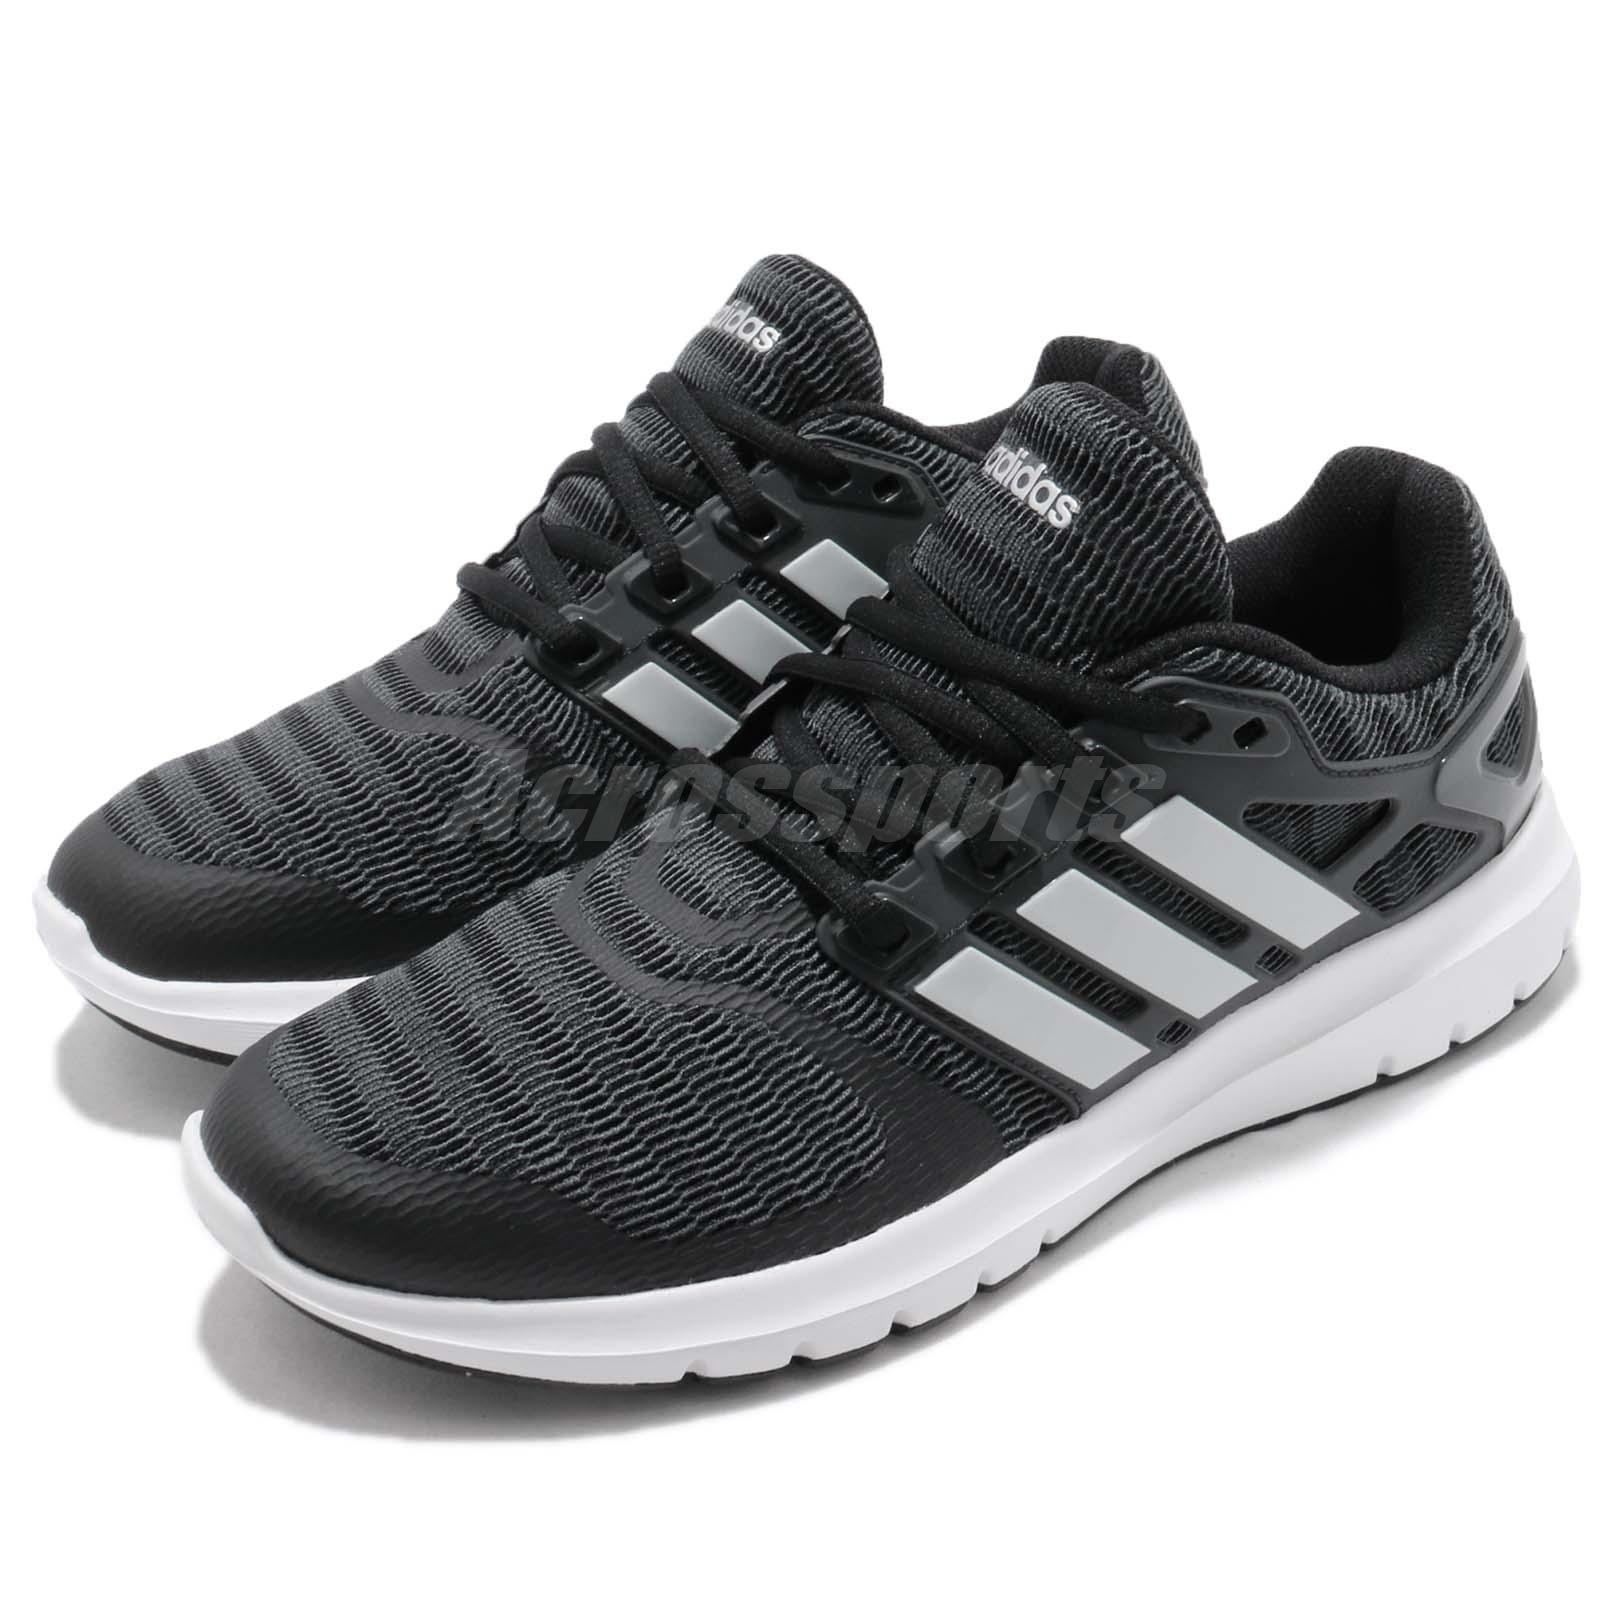 separation shoes 3763e 95917 Details about adidas Energy Cloud V Black Silver White Women Running Shoes  Sneakers B44846